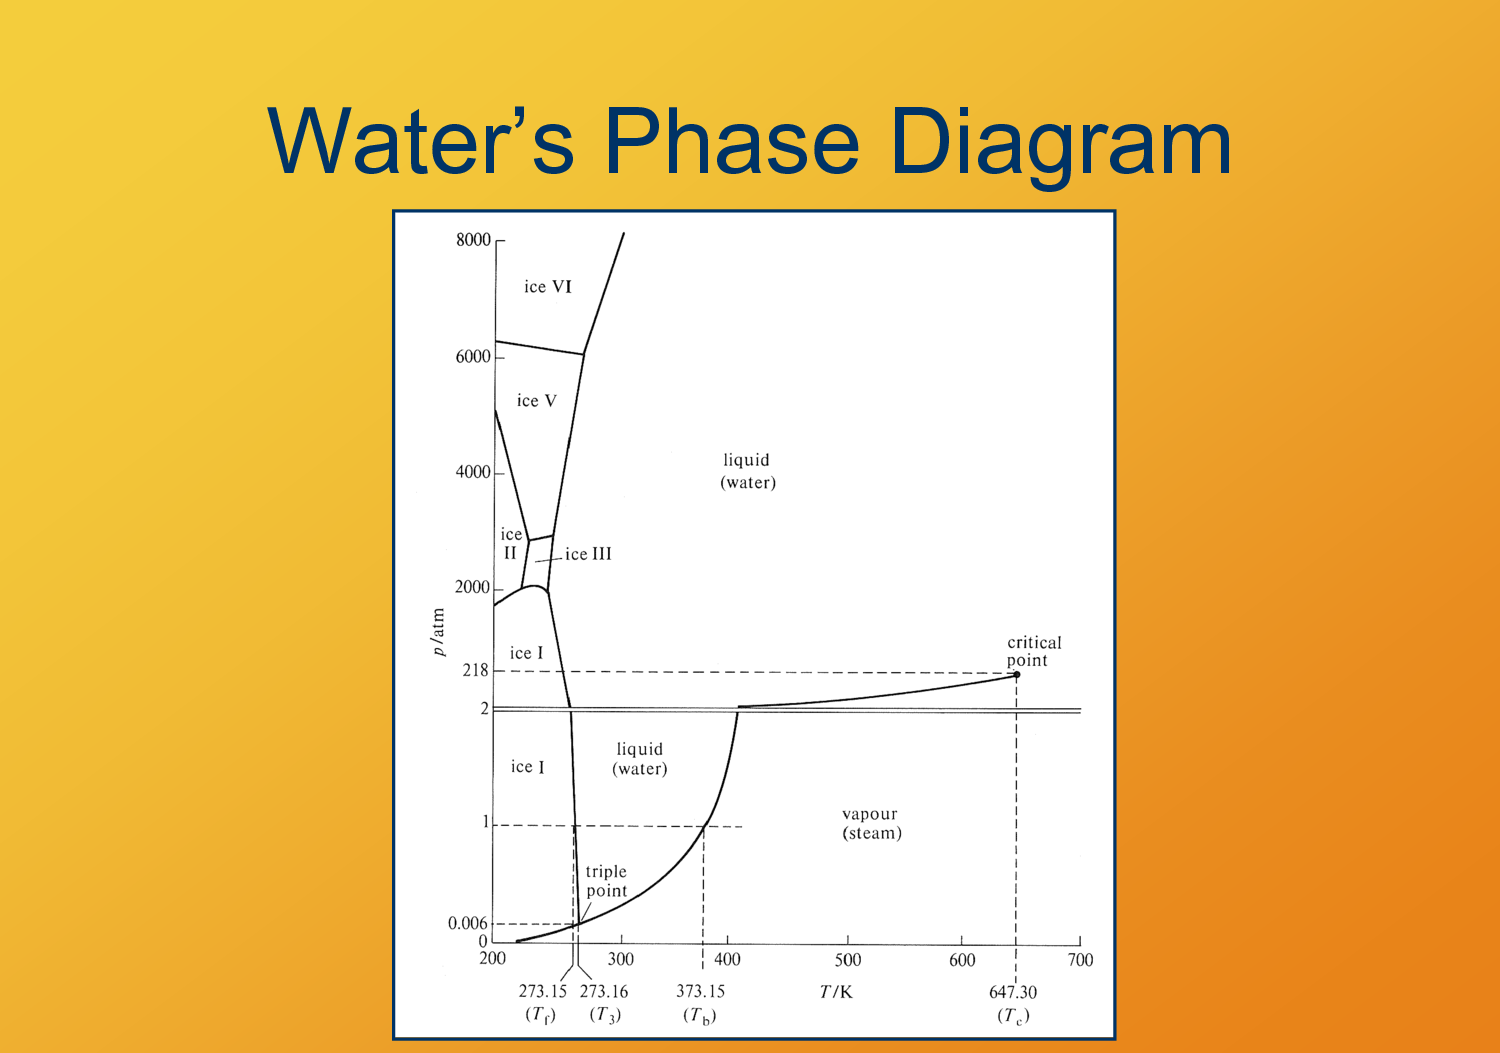 Phase Diagram for Water with Arrows